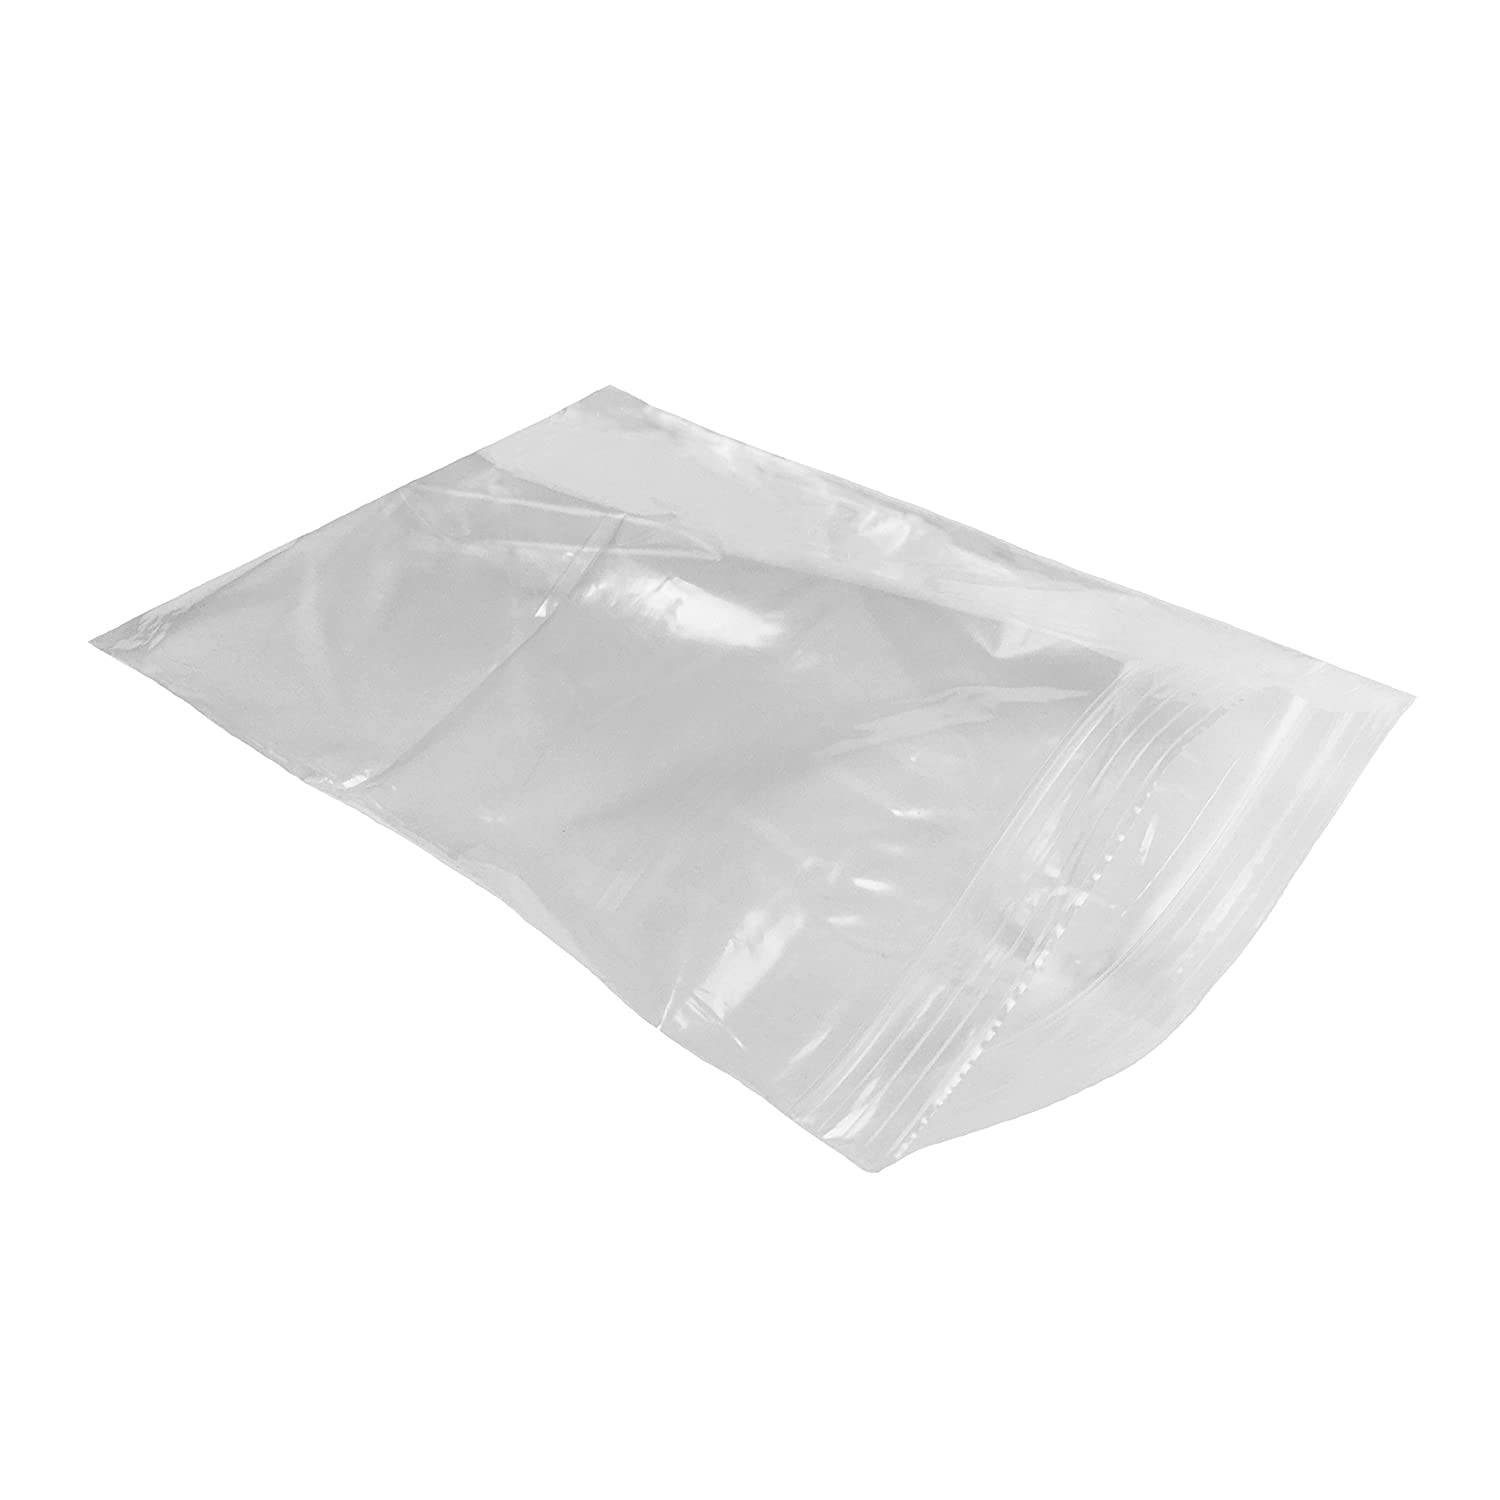 Starboxes Reclosable 4 x 6 2 Mil Clear Resealable Bags. Never Misplace Your Items Again. 100